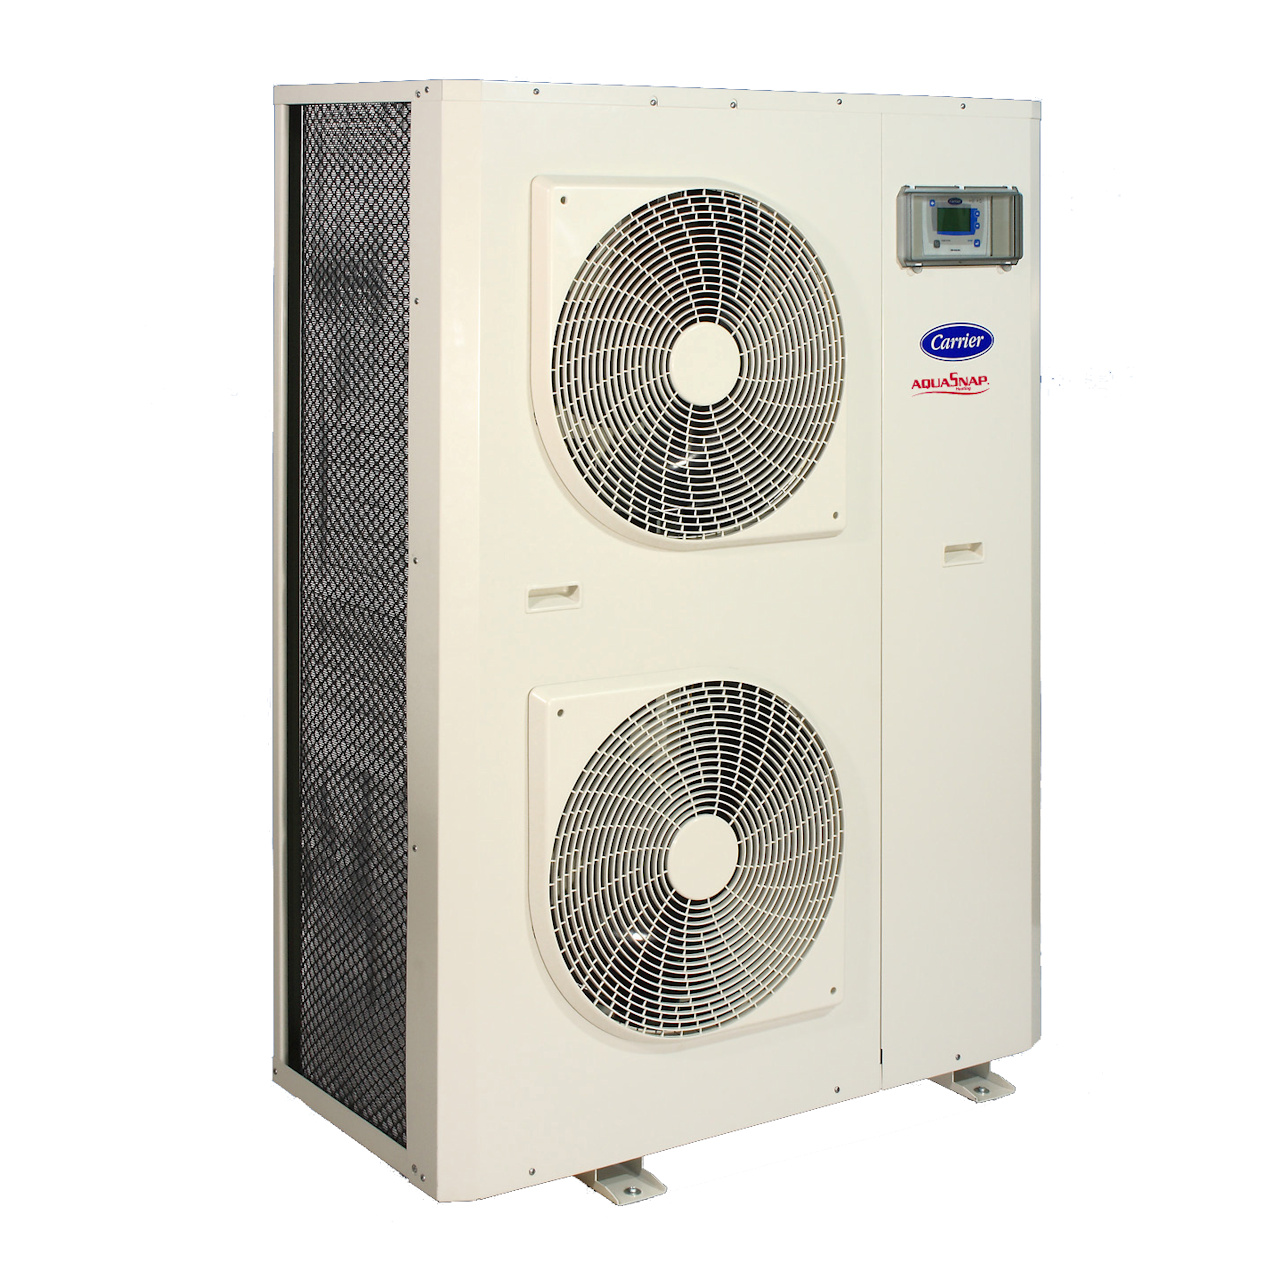 carrier-61AF-014-019-air-to-water-heat-pump